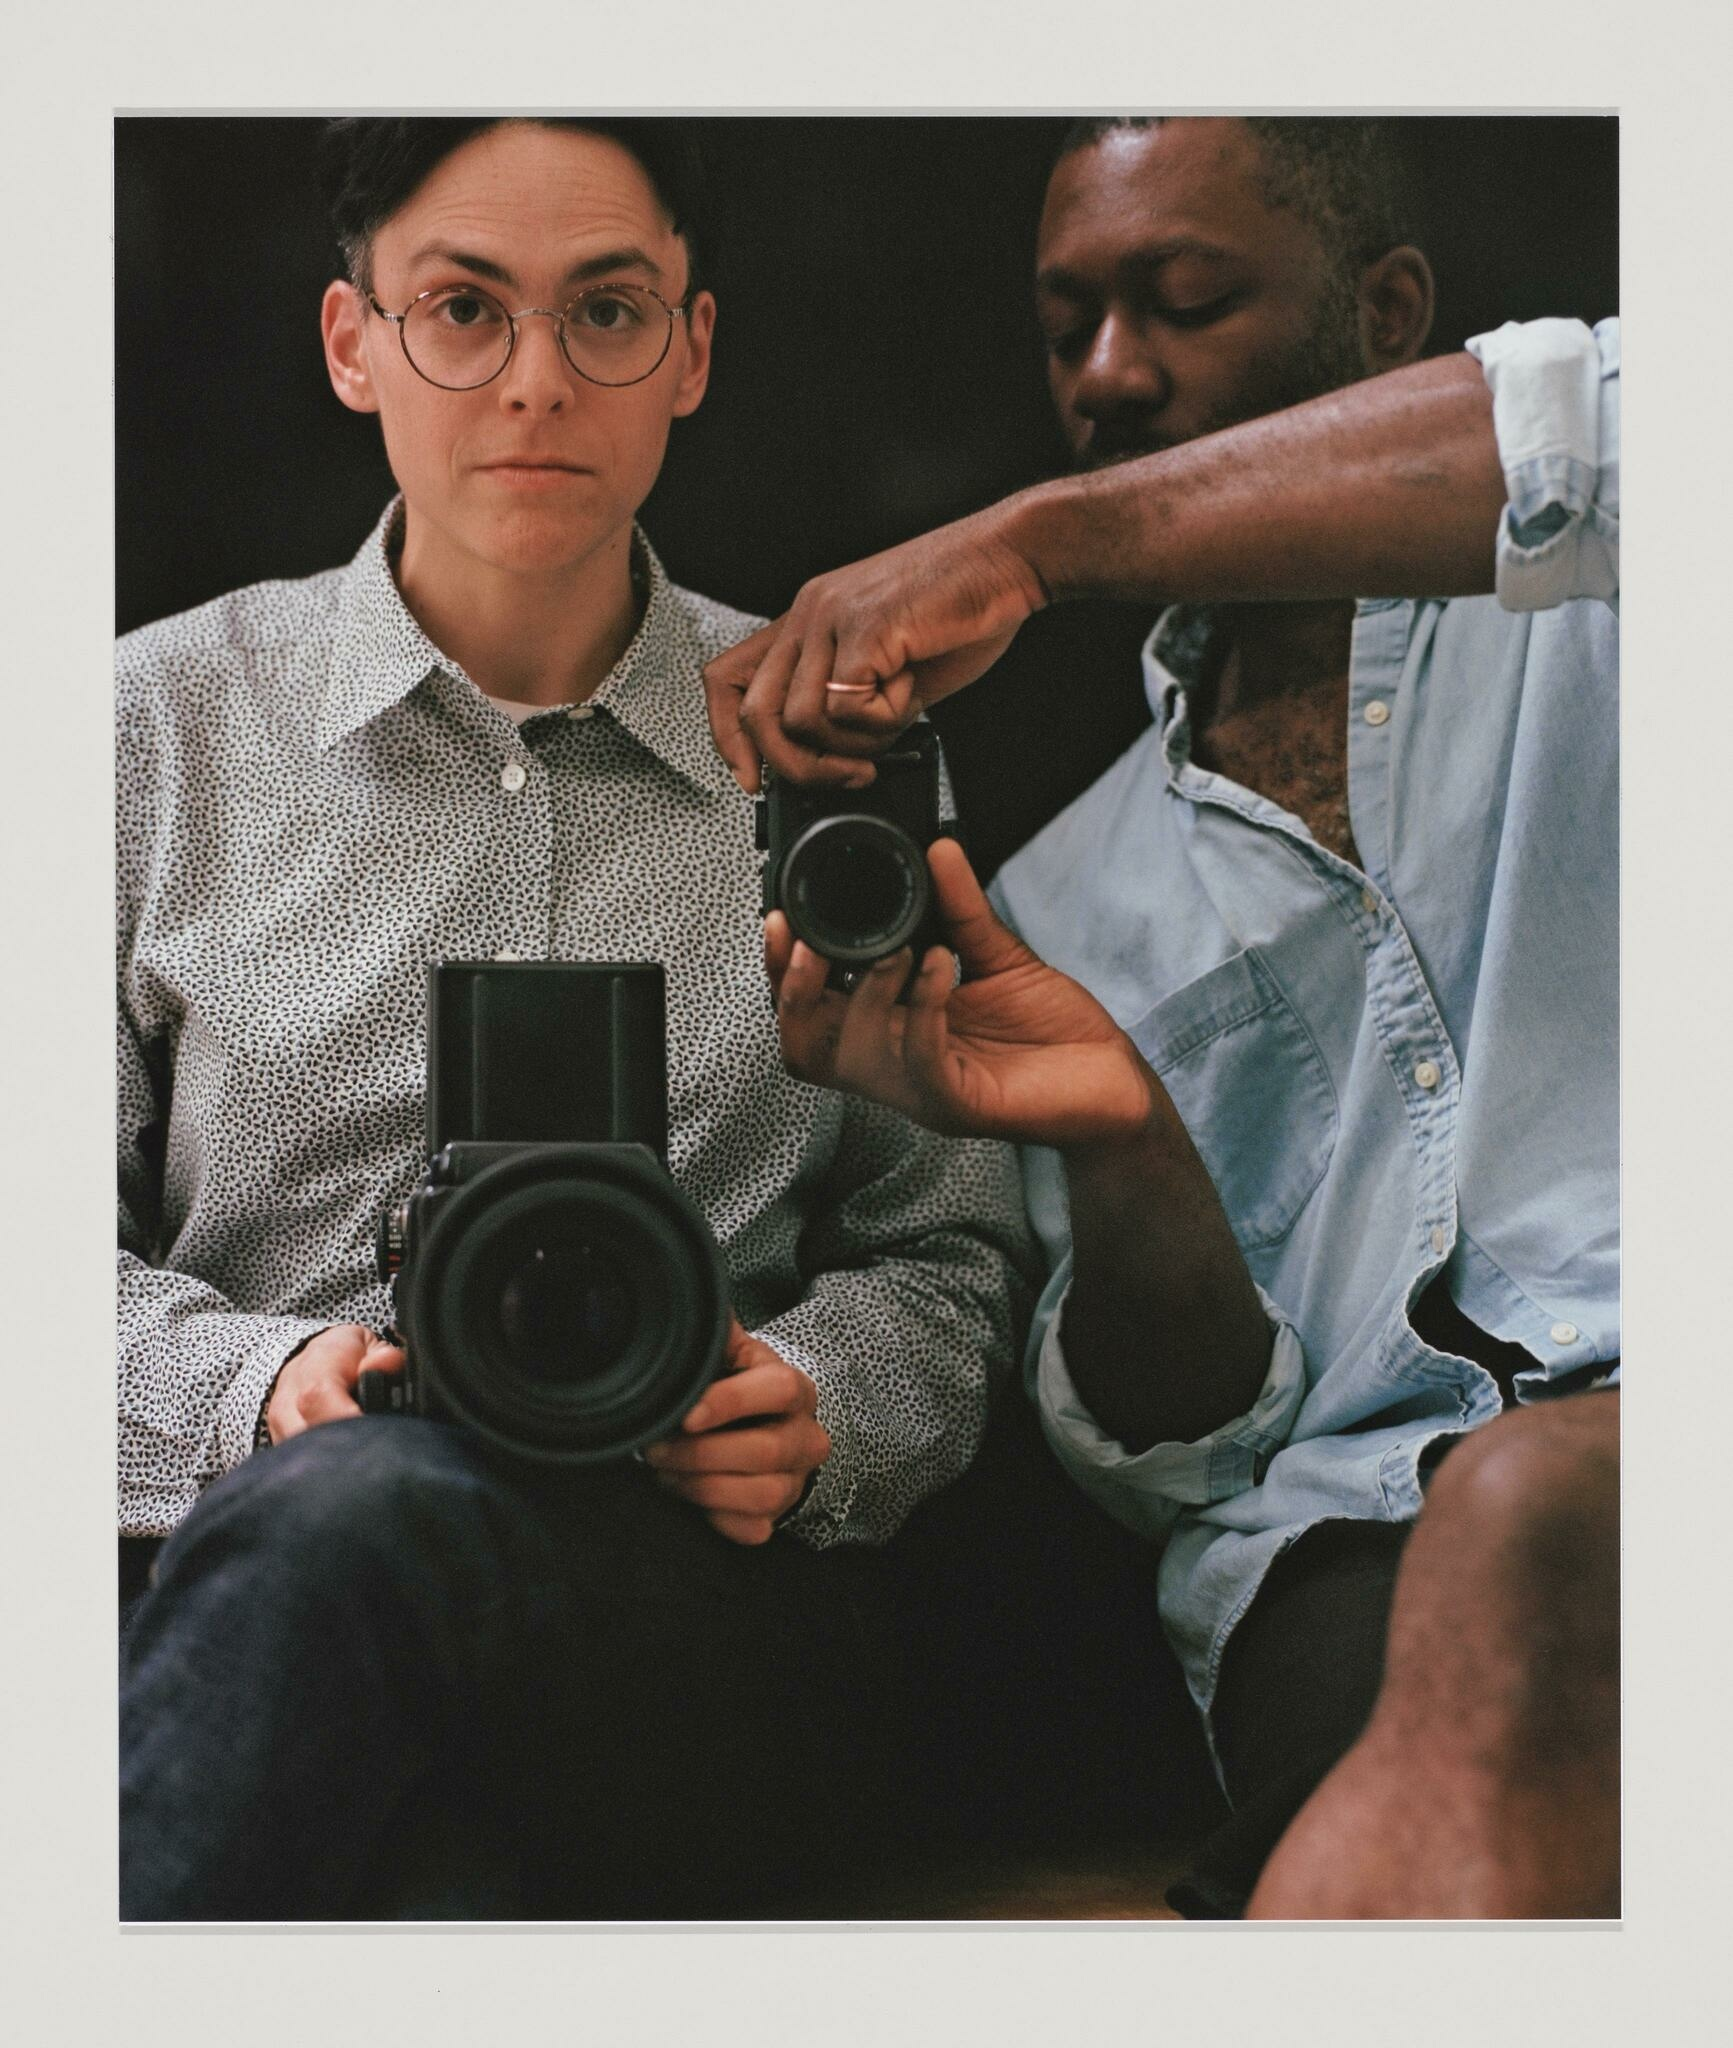 Two seated people, a white person in glasses and a Black person with a mustache, photograph their reflections with different size cameras